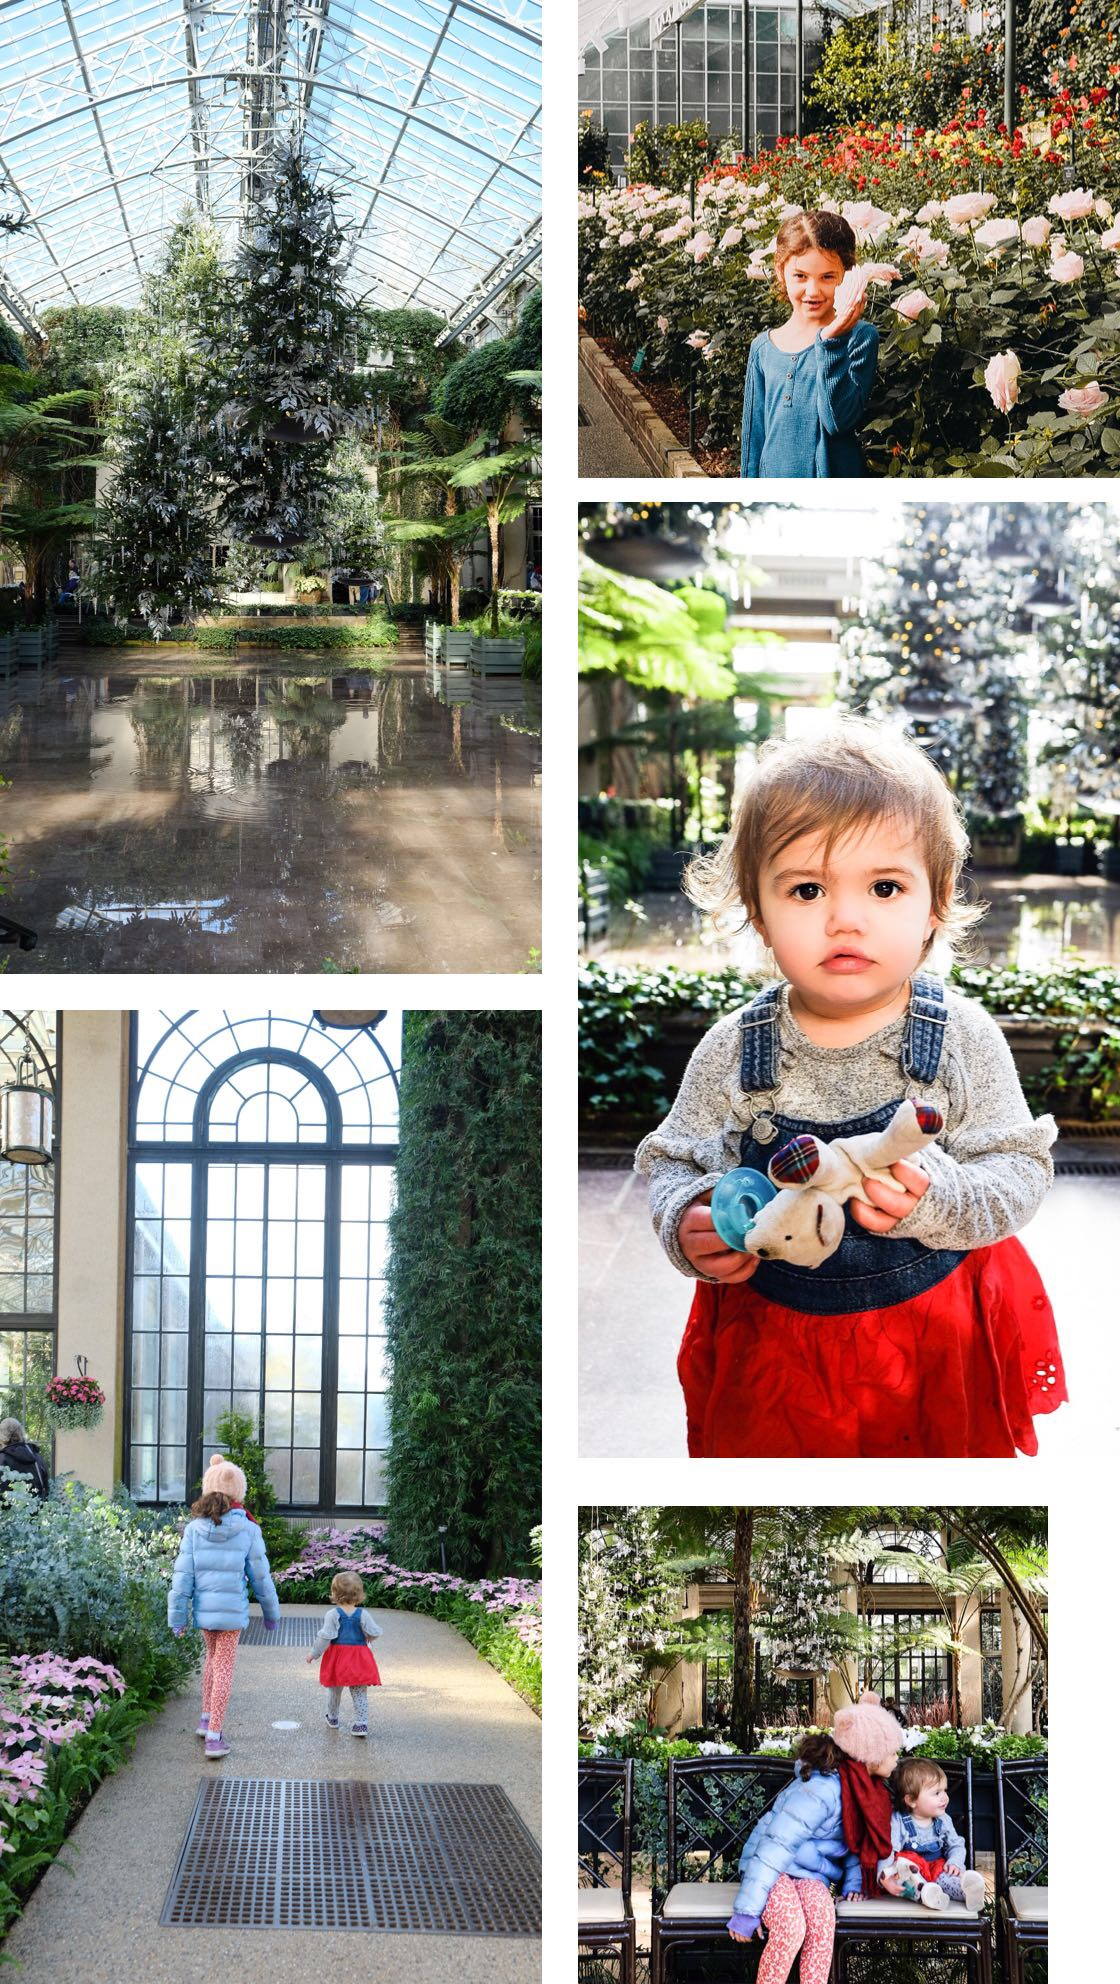 Chocolate and Lace shares a day trip from Philadelphia to Longwood Gardens.